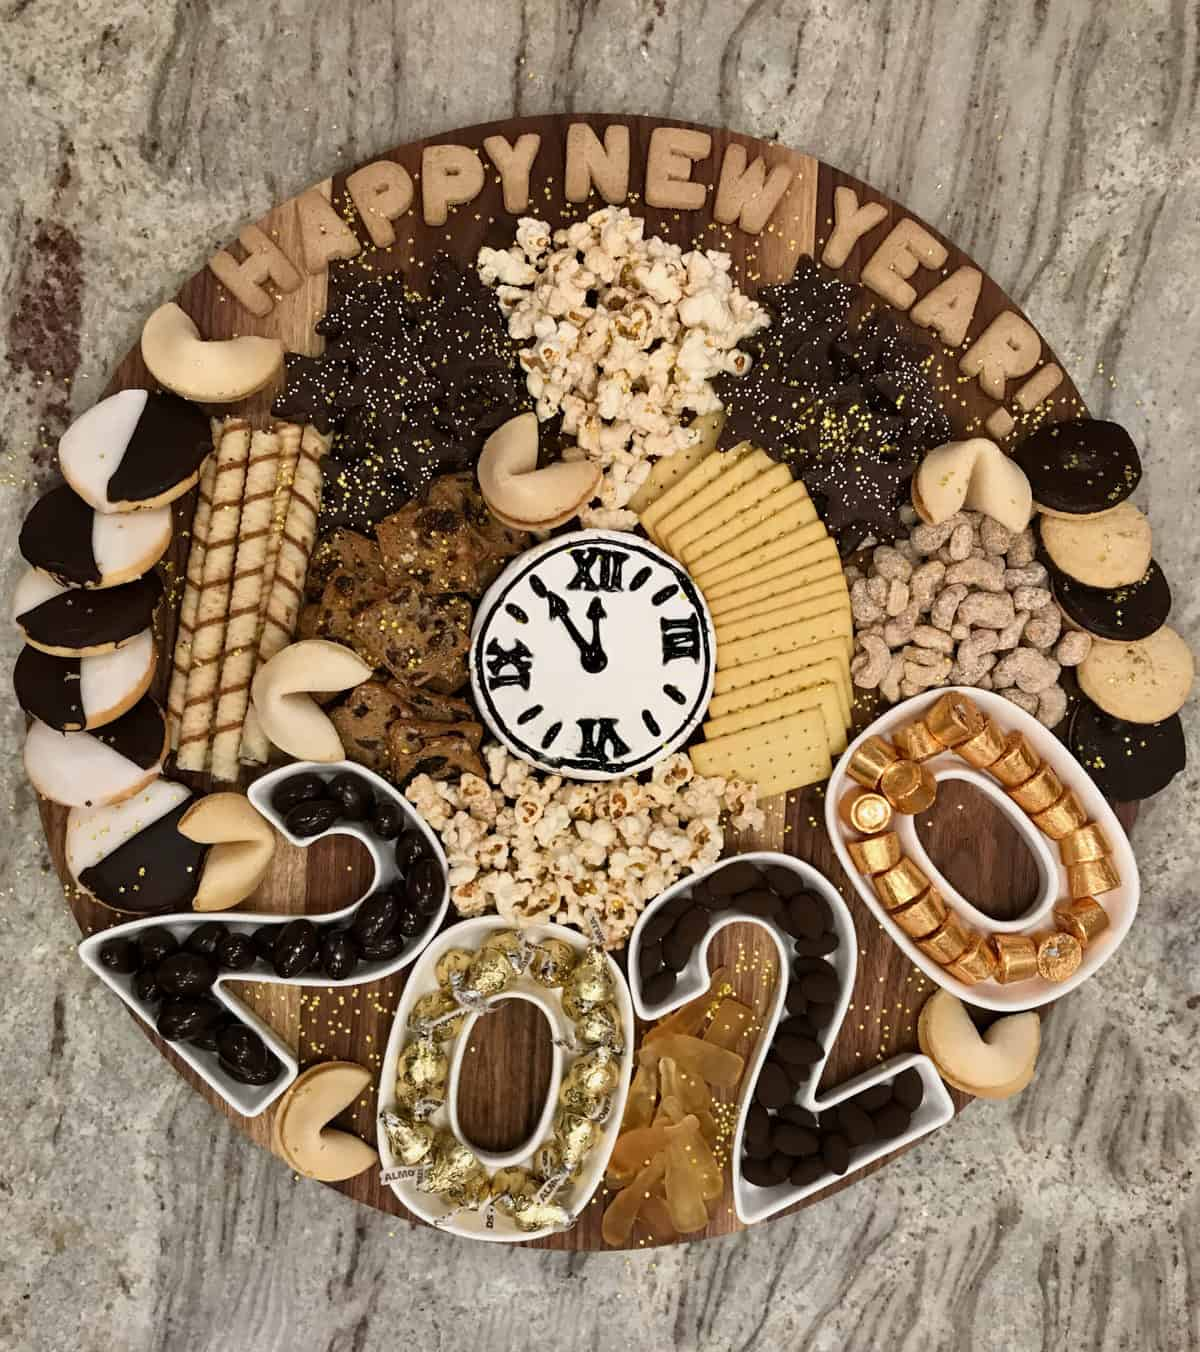 Happy New Year Snack Board by The BakerMama